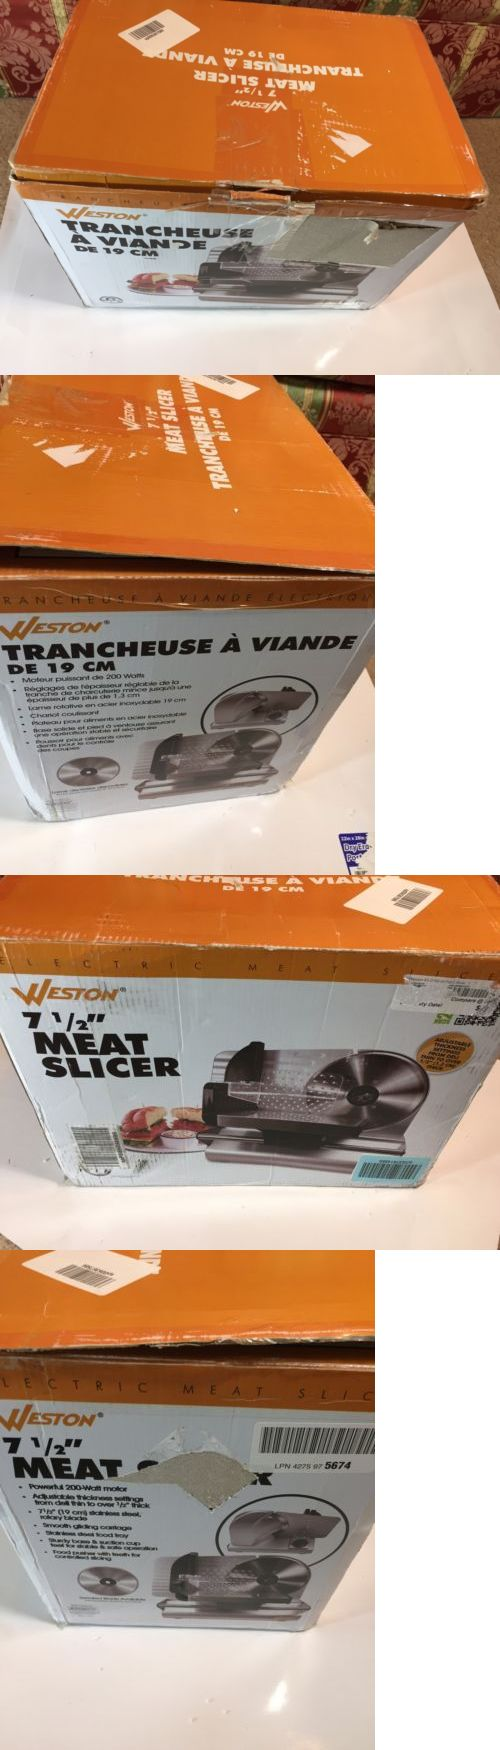 slicers and electric knives 20681 weston 7 5 meat slicer electric